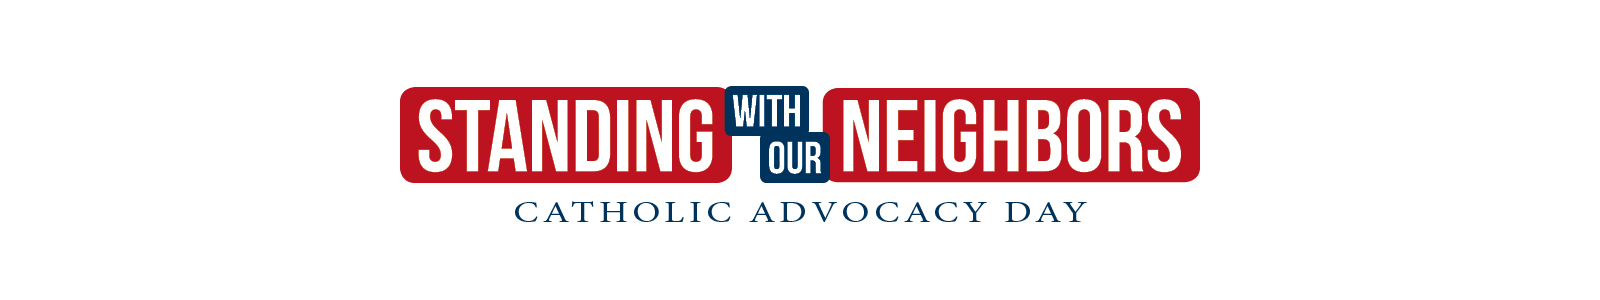 Catholic Advocacy Day